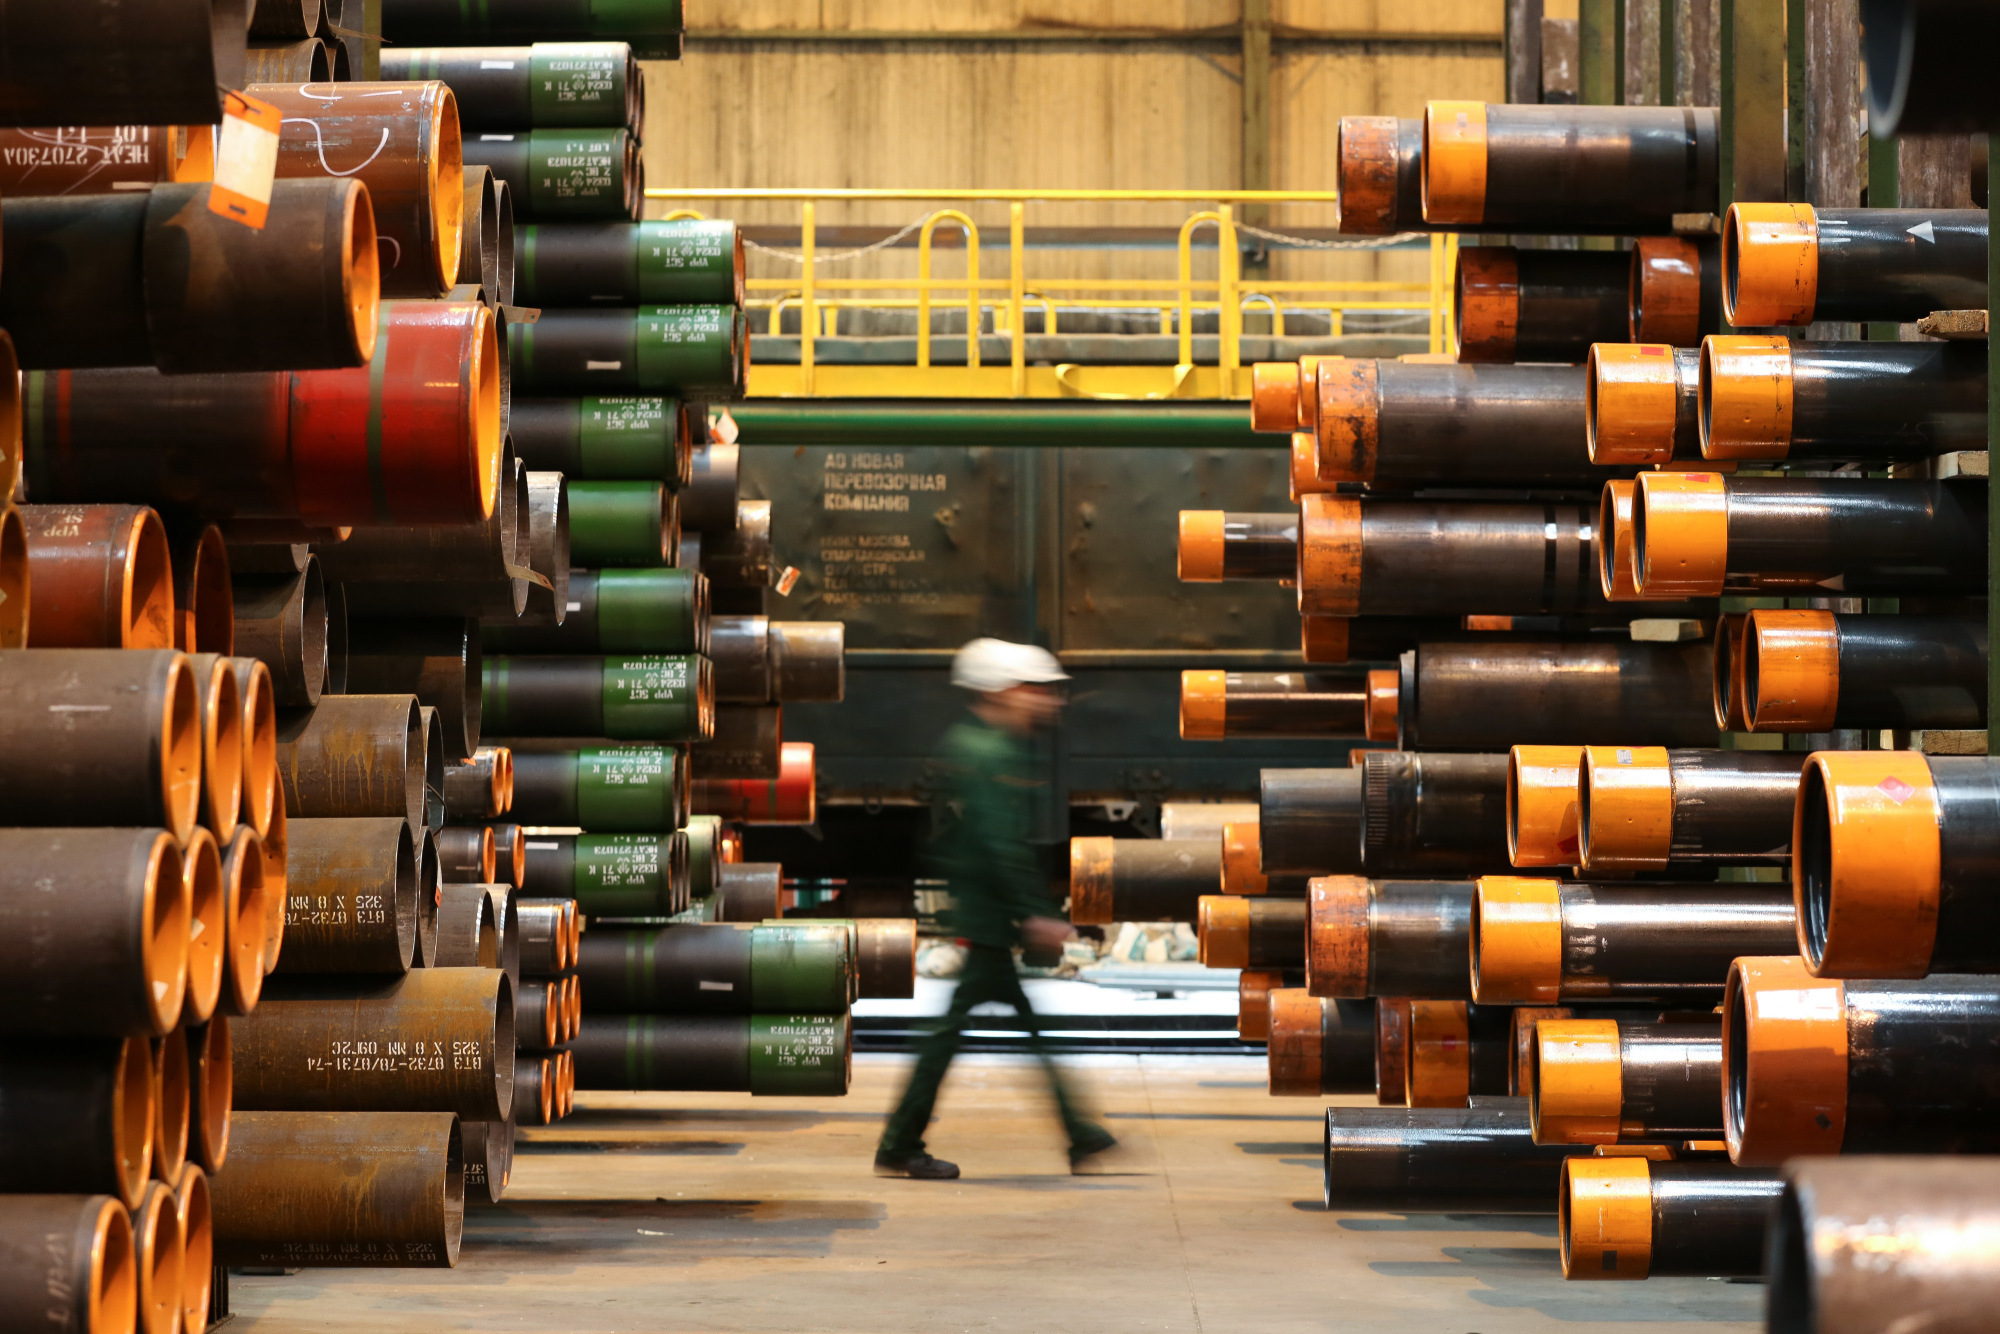 A worker passes stores of seamless steel pipes for use in oil and gas pipelines in a storage area at the Volzhsky Pipe Plant OJSC, operated by TMK PJSC, in Volzhsky, Russia, on March 30, 2017.  Photographer: Andrey Rudakov/Bloomberg